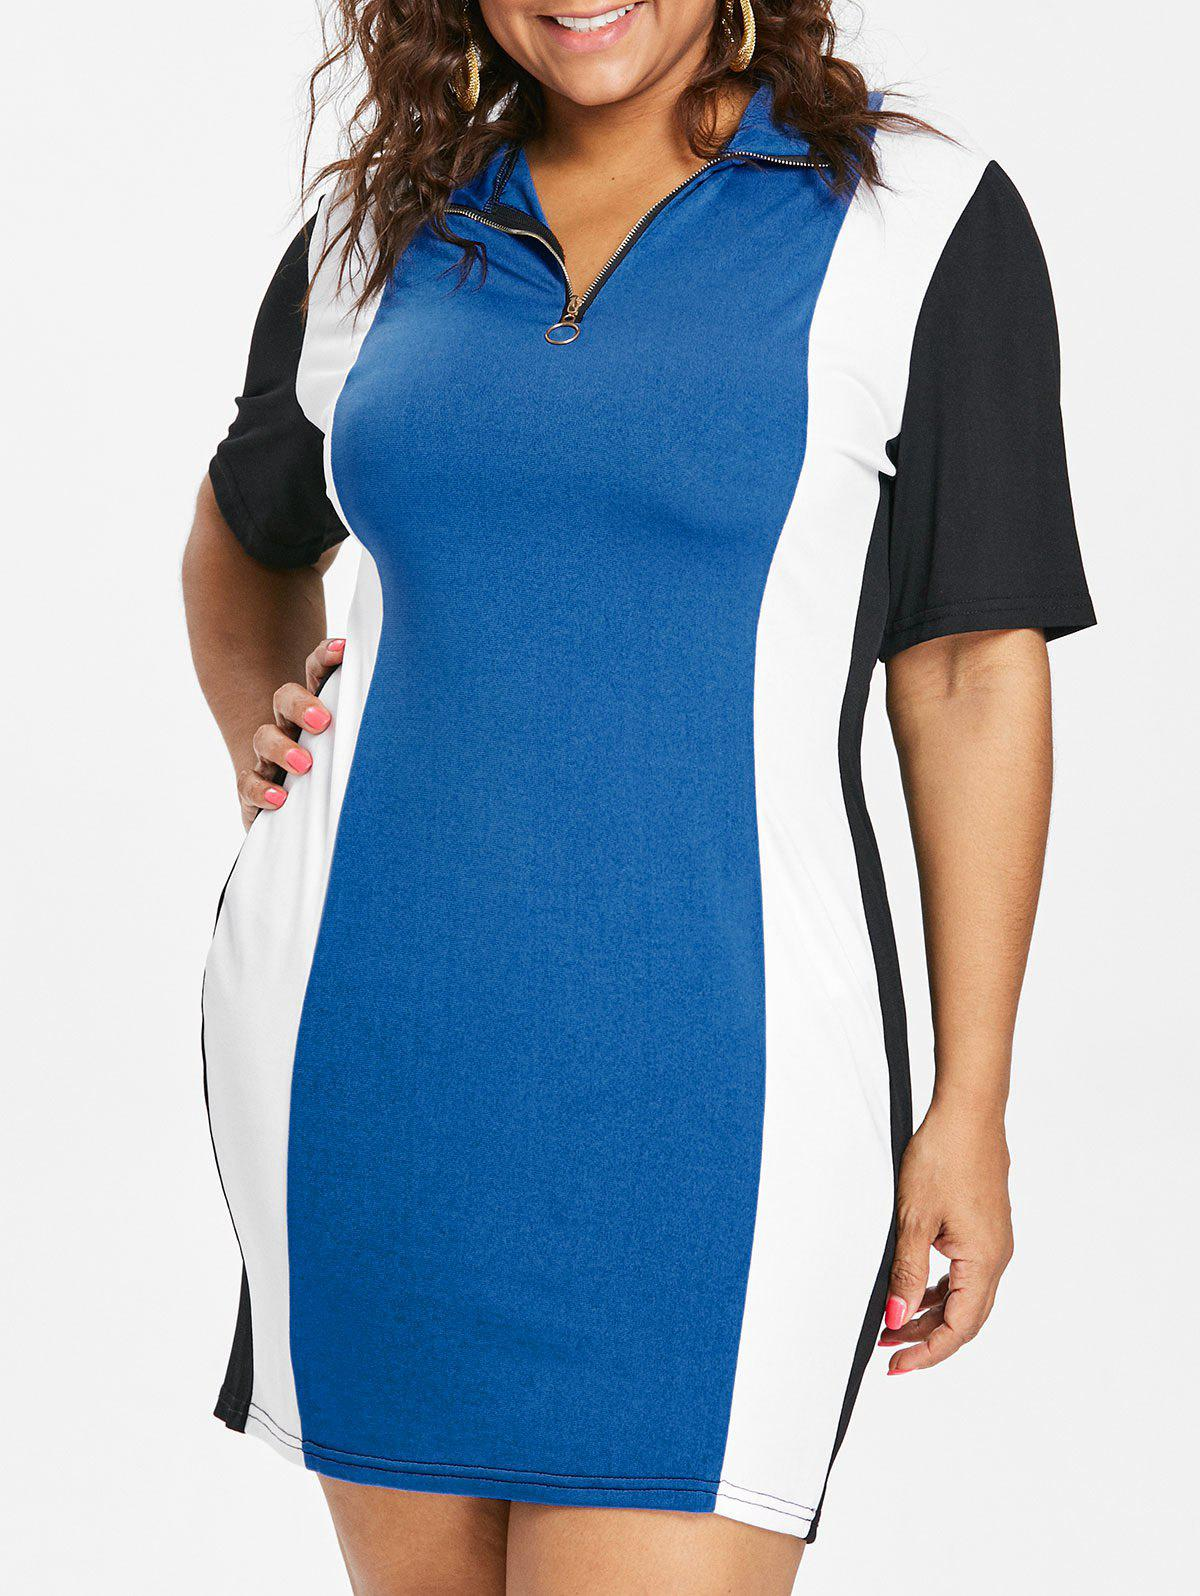 2019 Color Block Plus Size Zipper Embellished Mini Dress | Rosegal.com